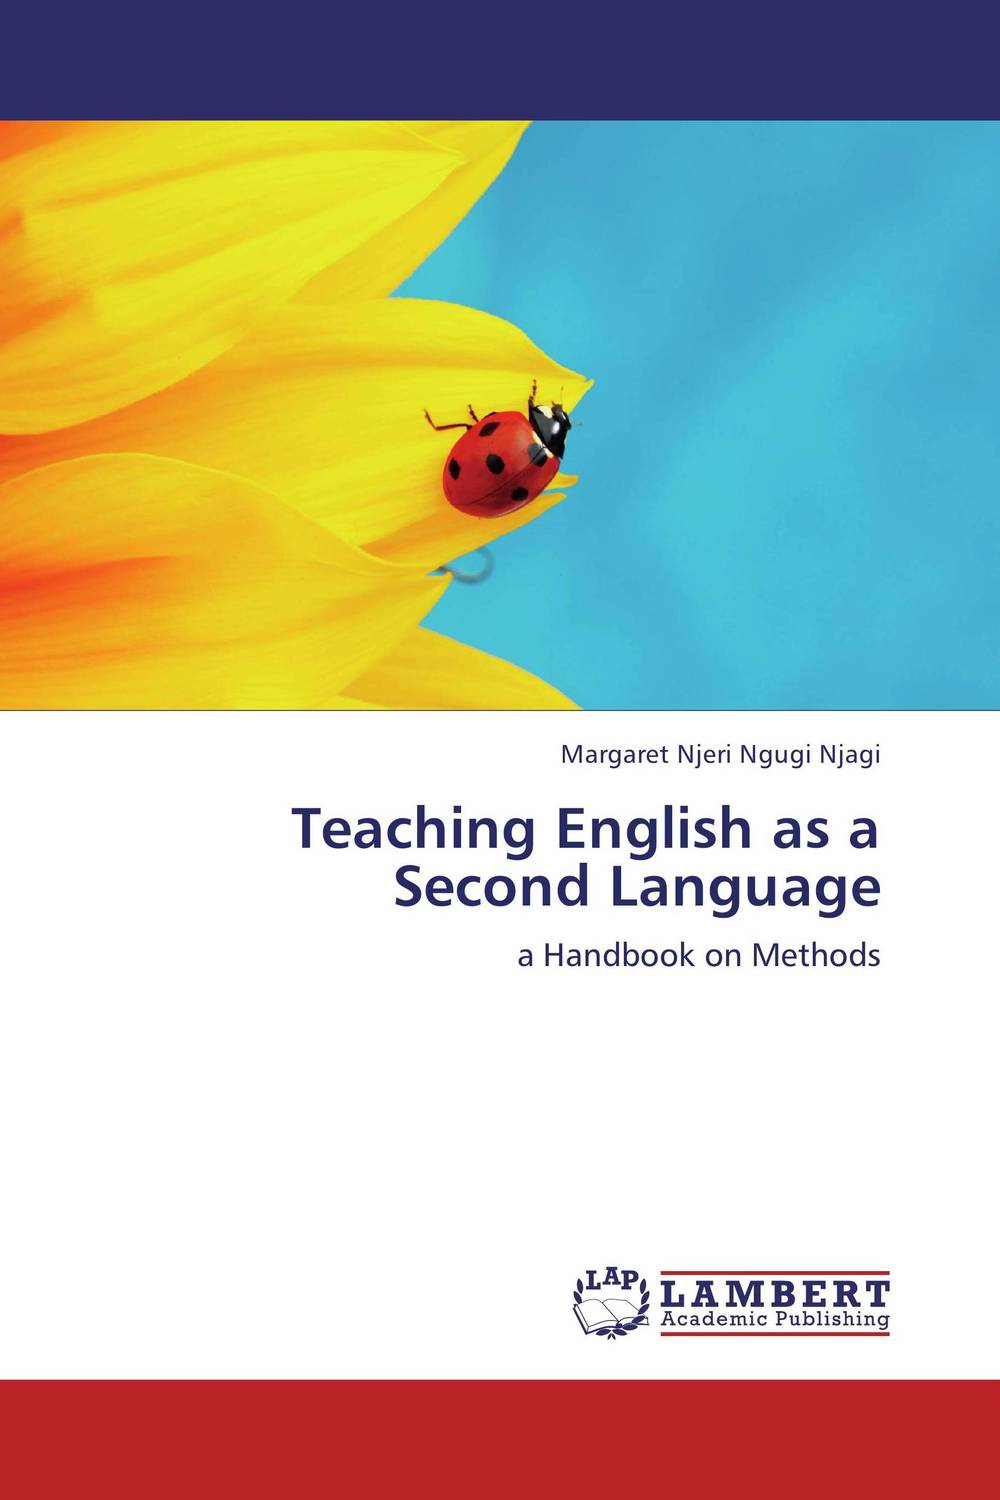 Teaching English as a Second Language language change and lexical variation in youth language